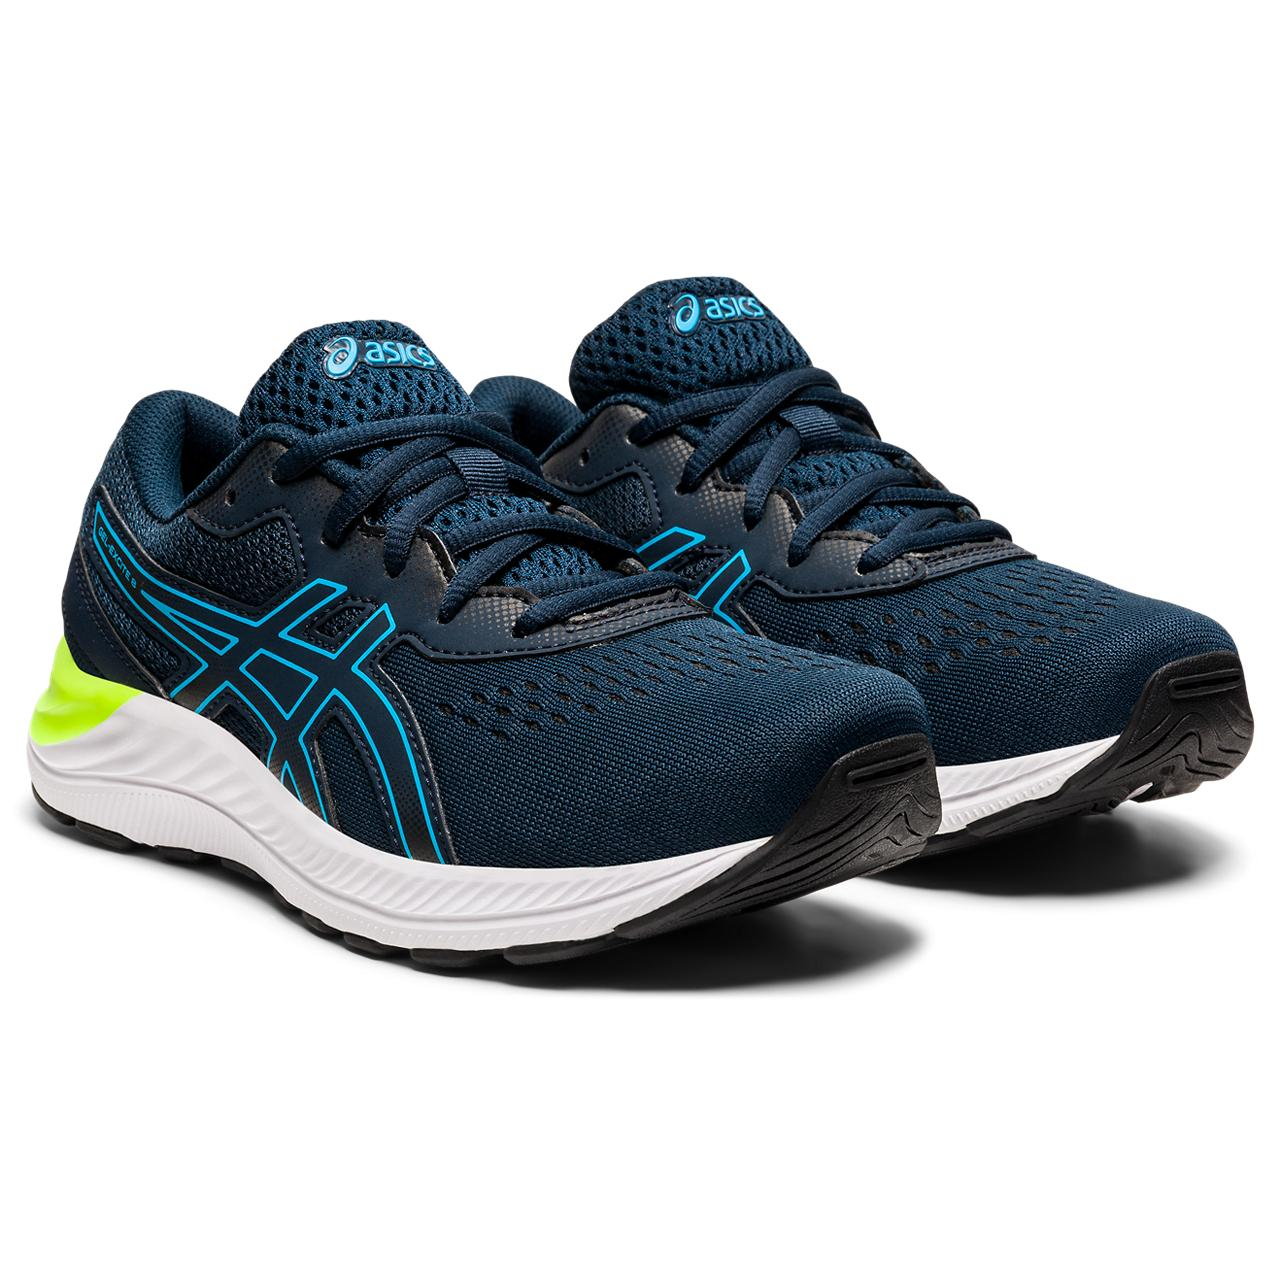 'ASICS' Youth Gel Excite 8 - French Blue / Digital Aqua